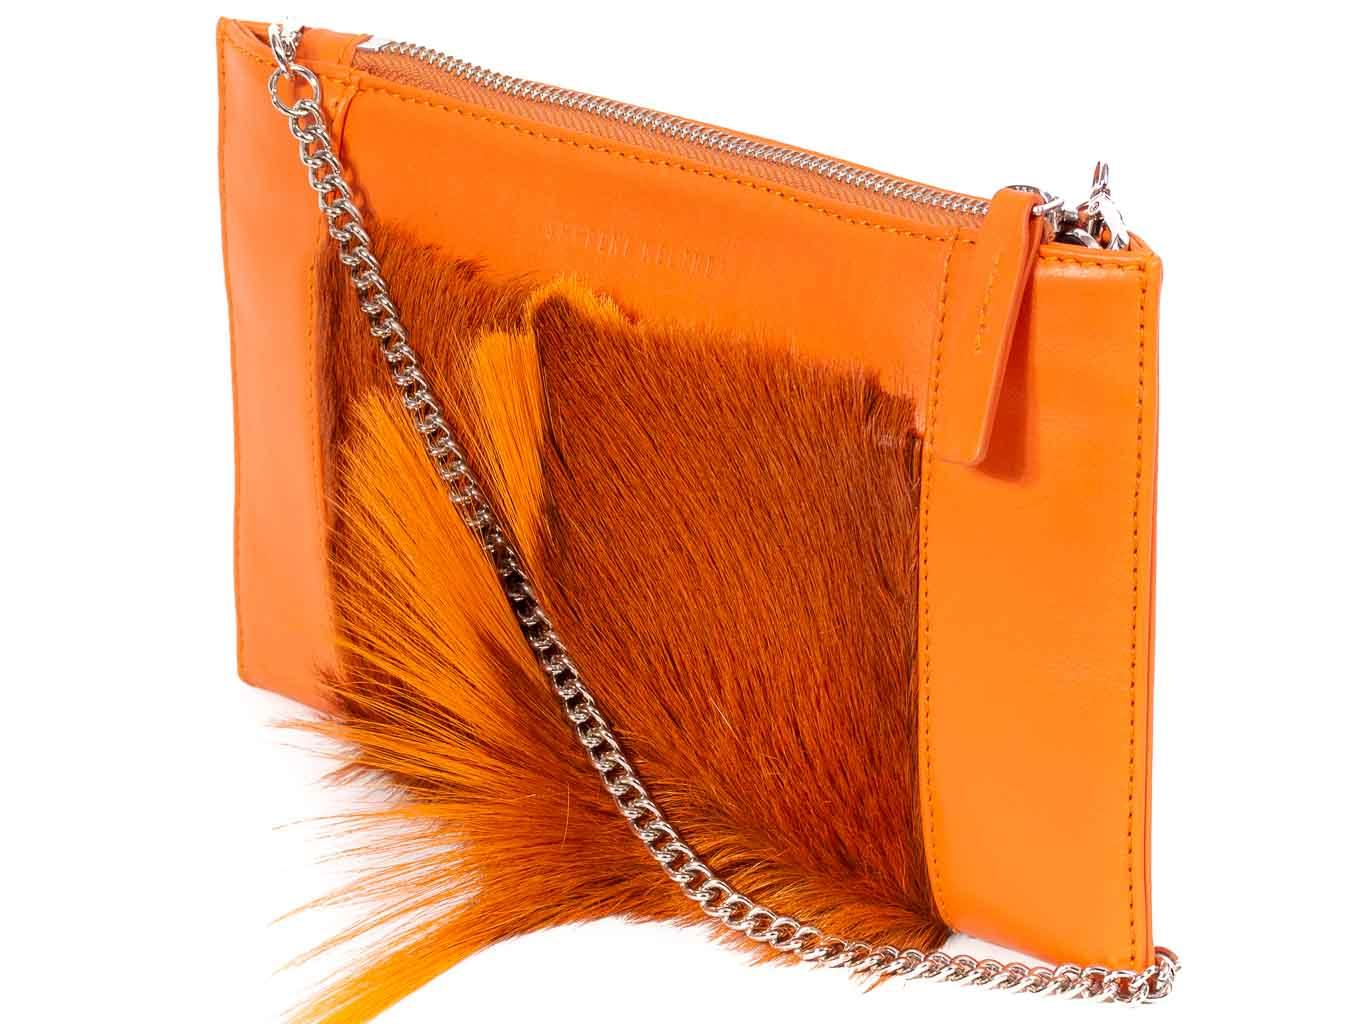 Clutch Springbok Handbag in Orange with a fan feature by Sherene Melinda front strap